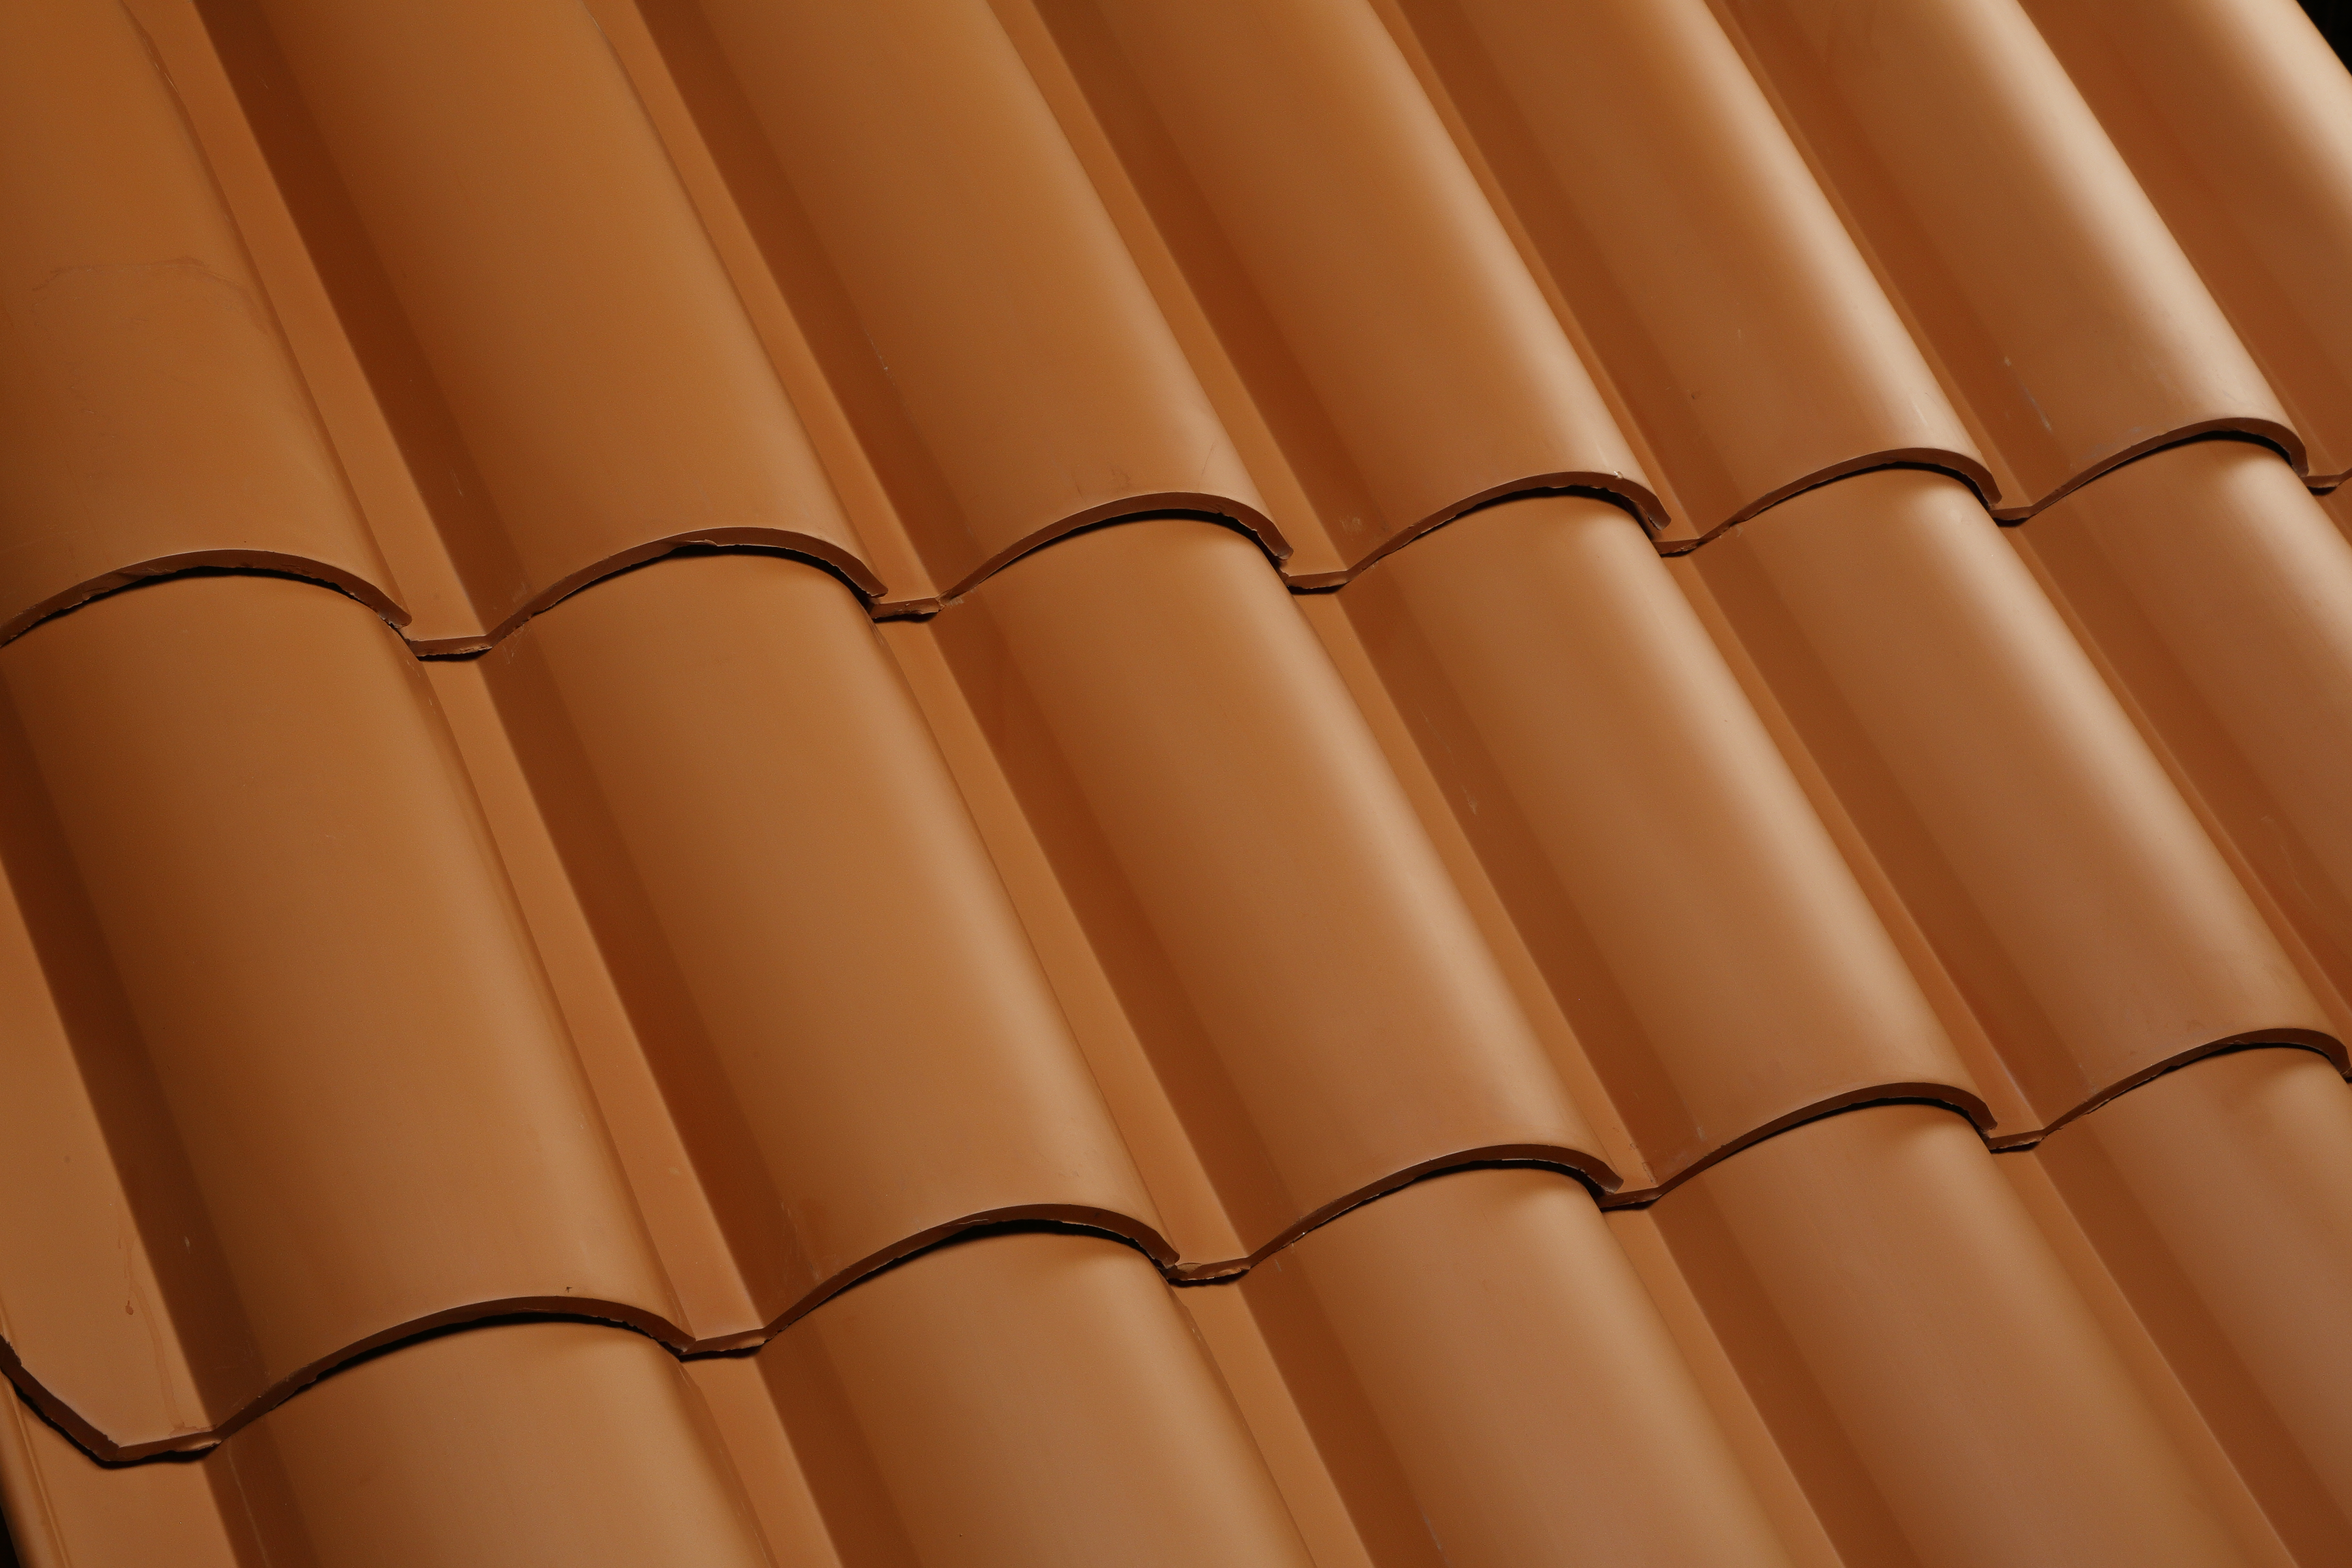 See the texture of clay roof tiles.